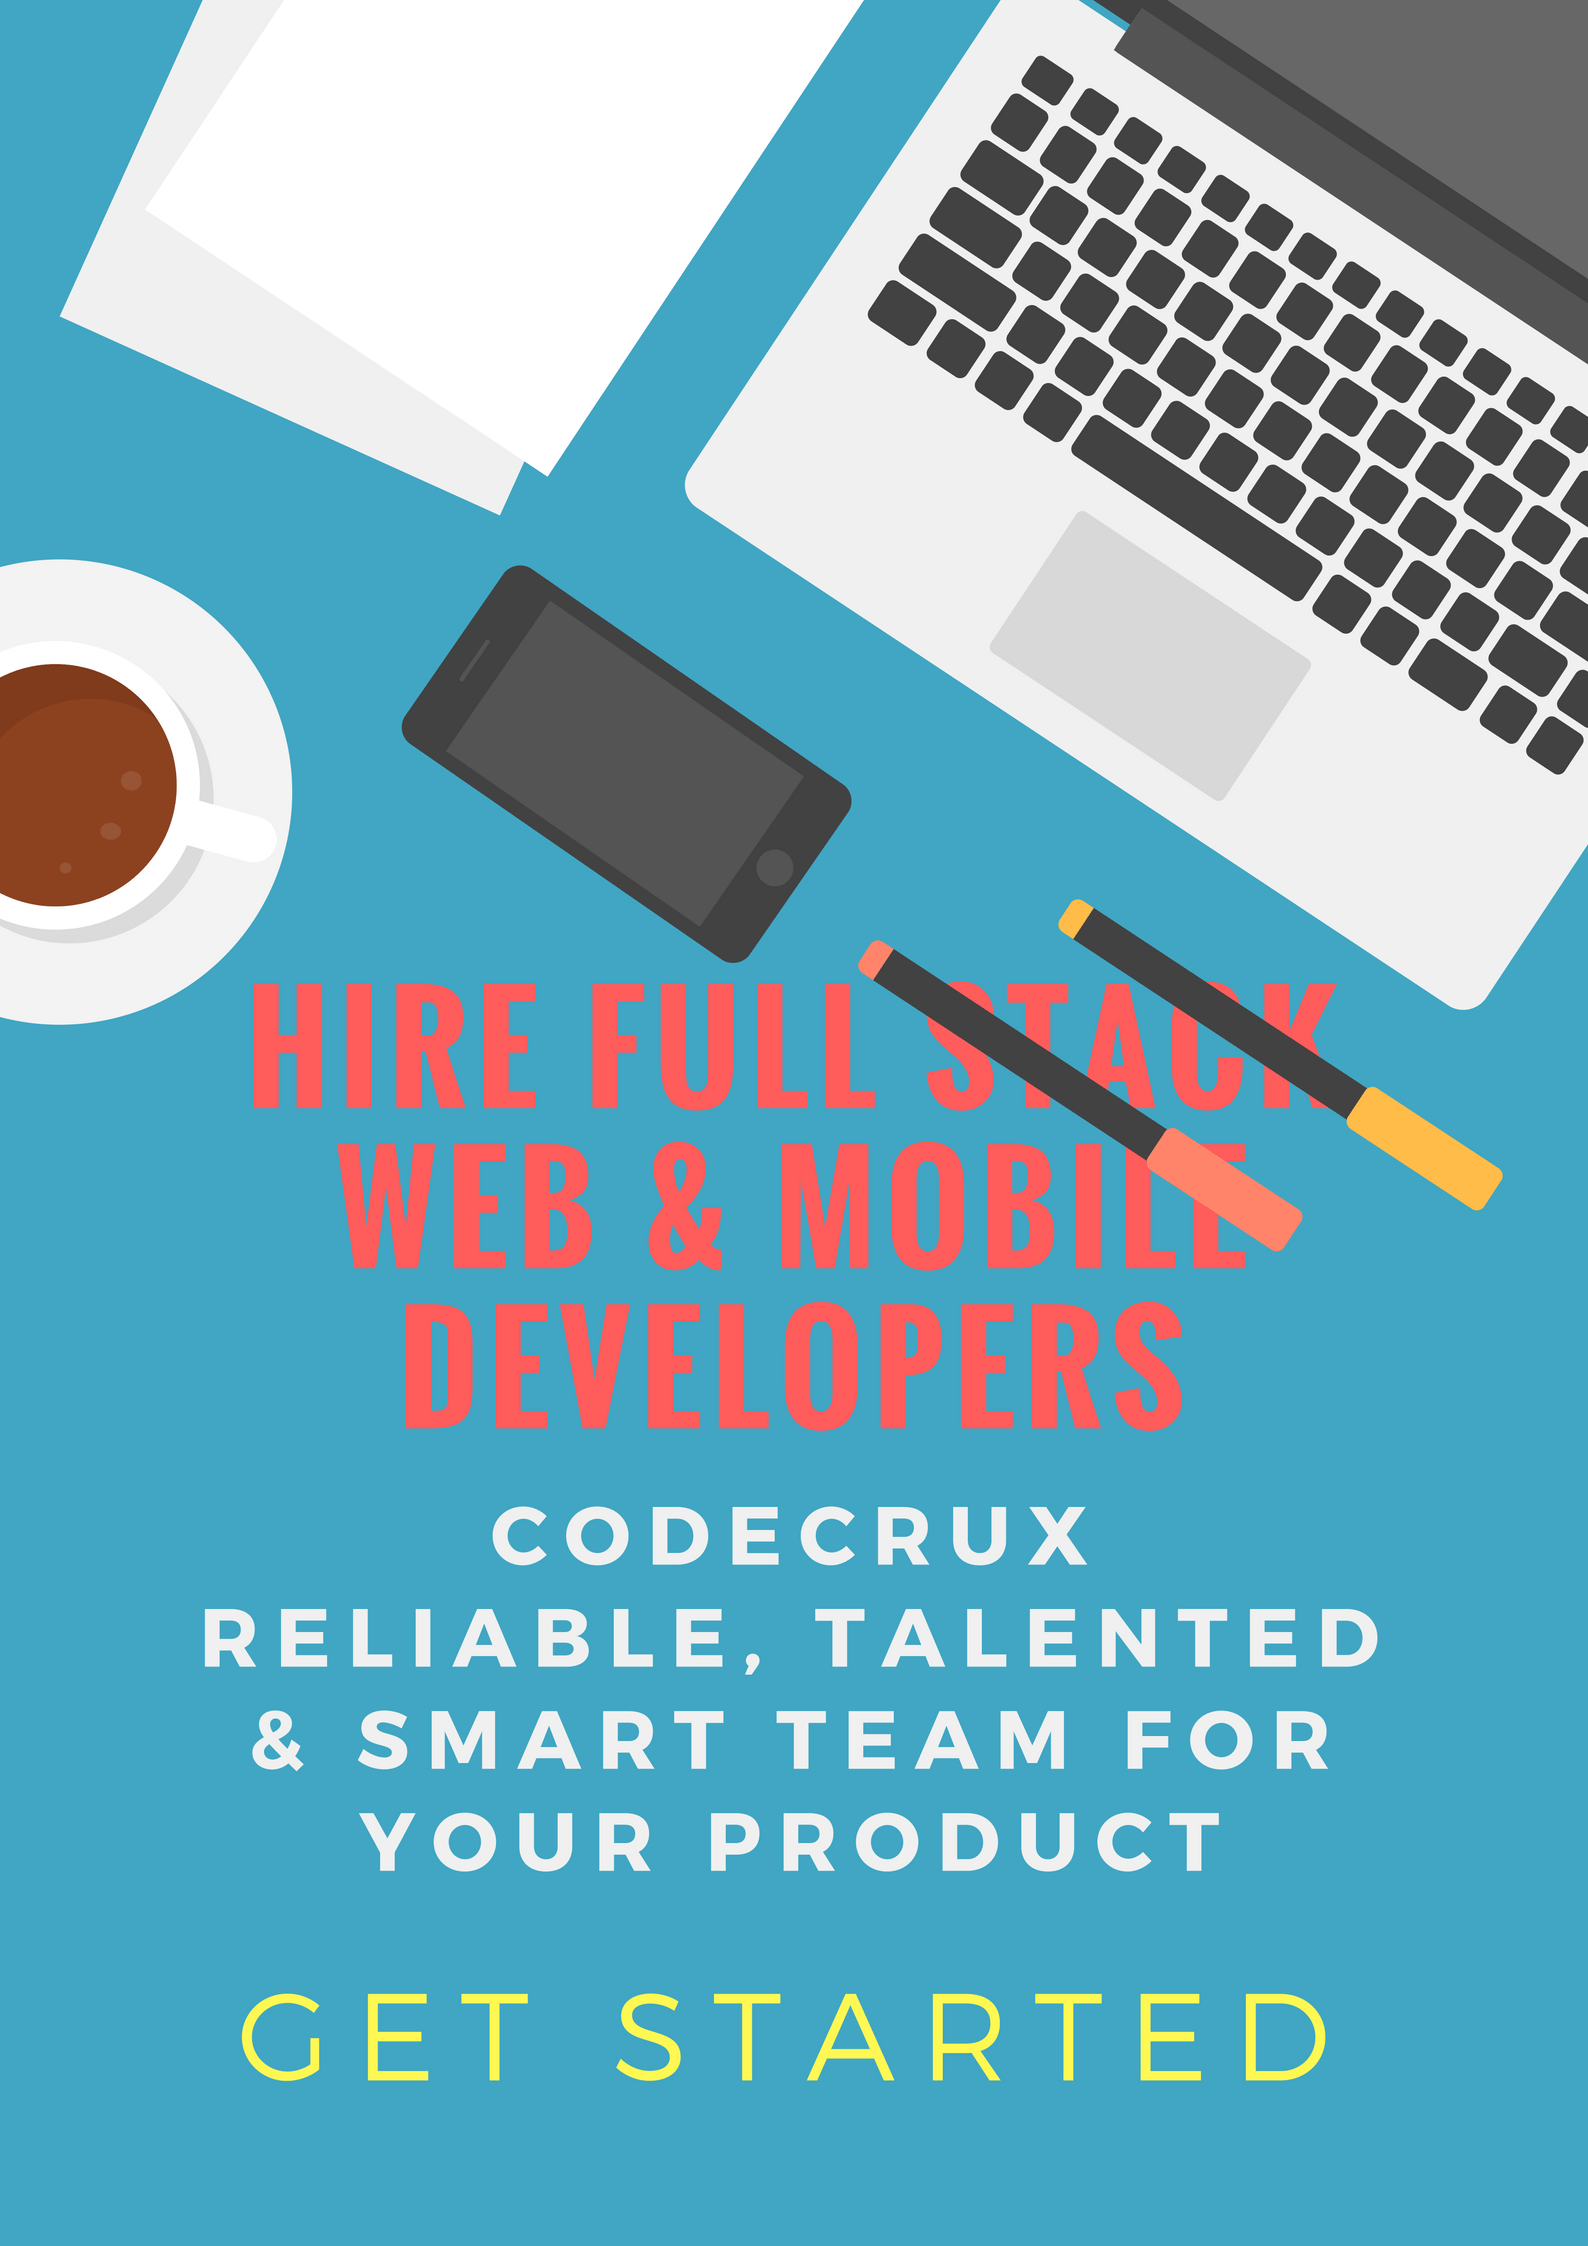 Hire codecrux